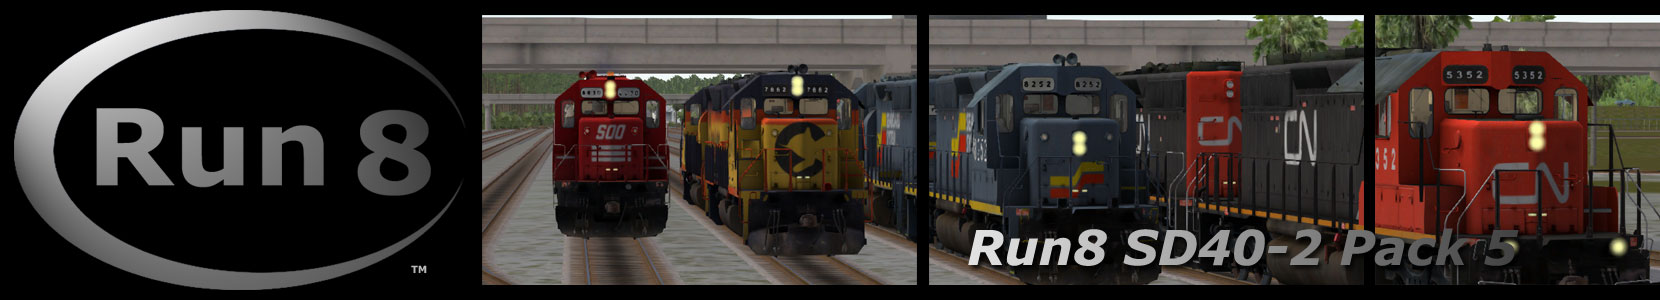 Run8 Train Simulator SD40-2 Pack 5